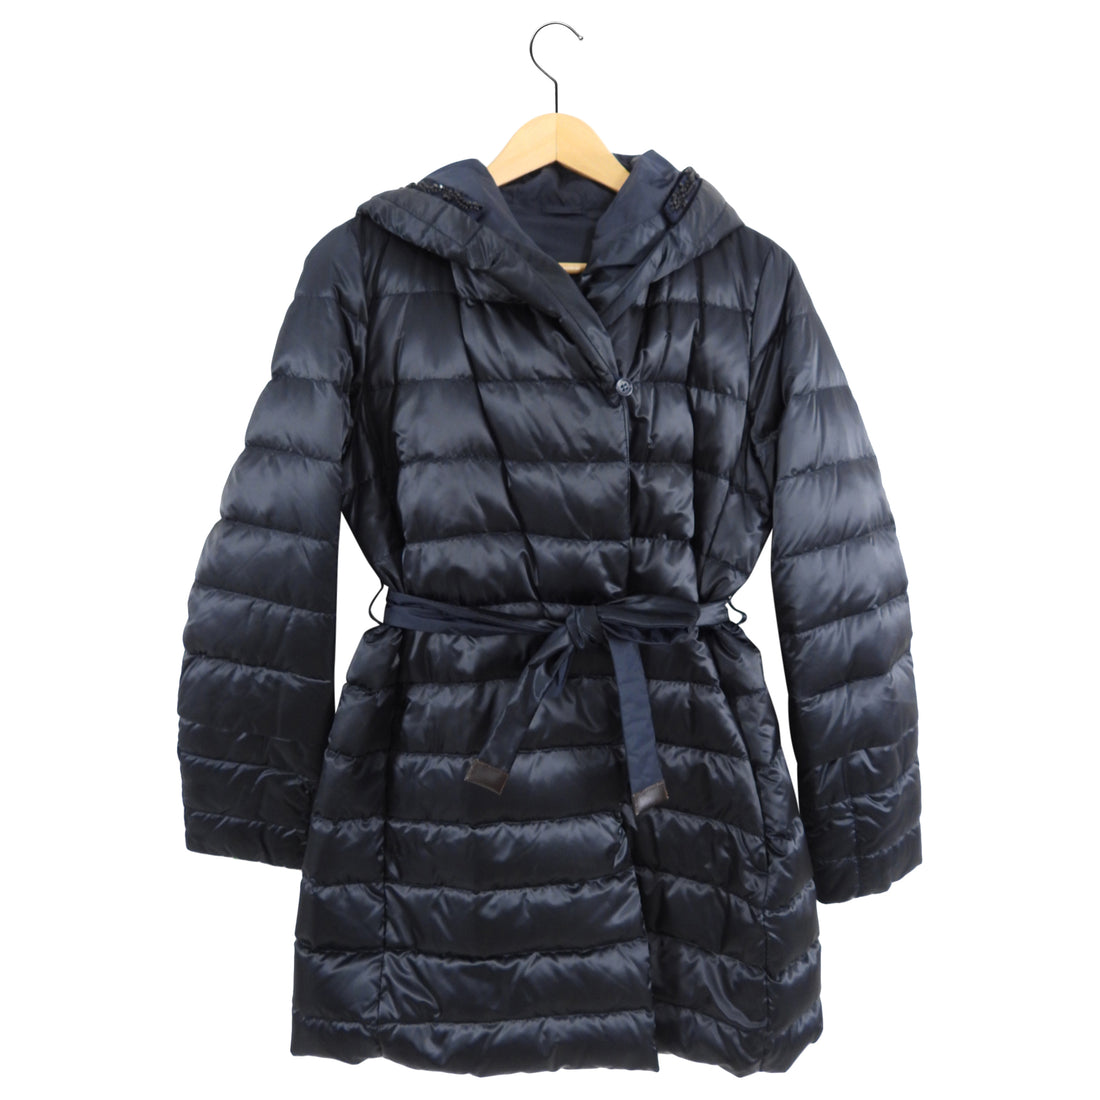 'S Max Mara Black Quilt Belted Coat - USA 8/10